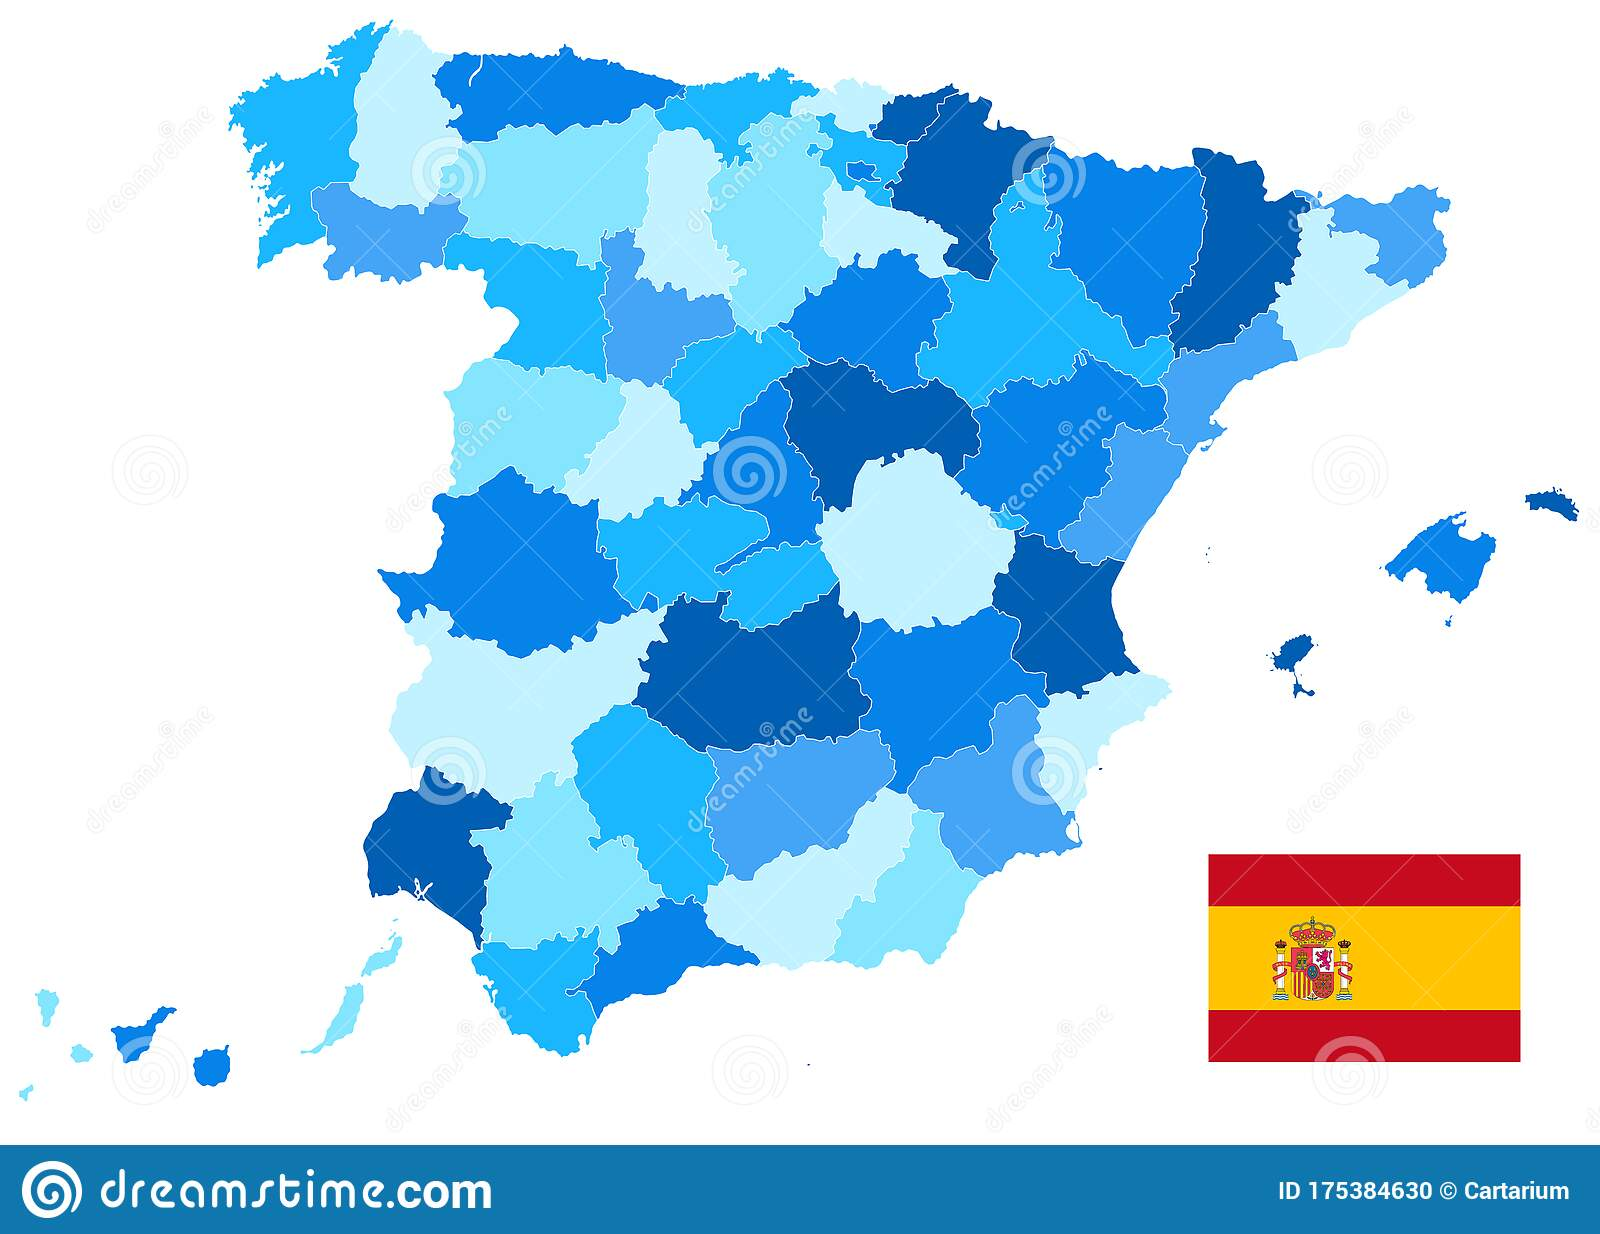 Picture of: Spain Administrative Divisions Map Blue Color Isolated On White Empty Map Stock Vector Illustration Of Blue Emblem 175384630